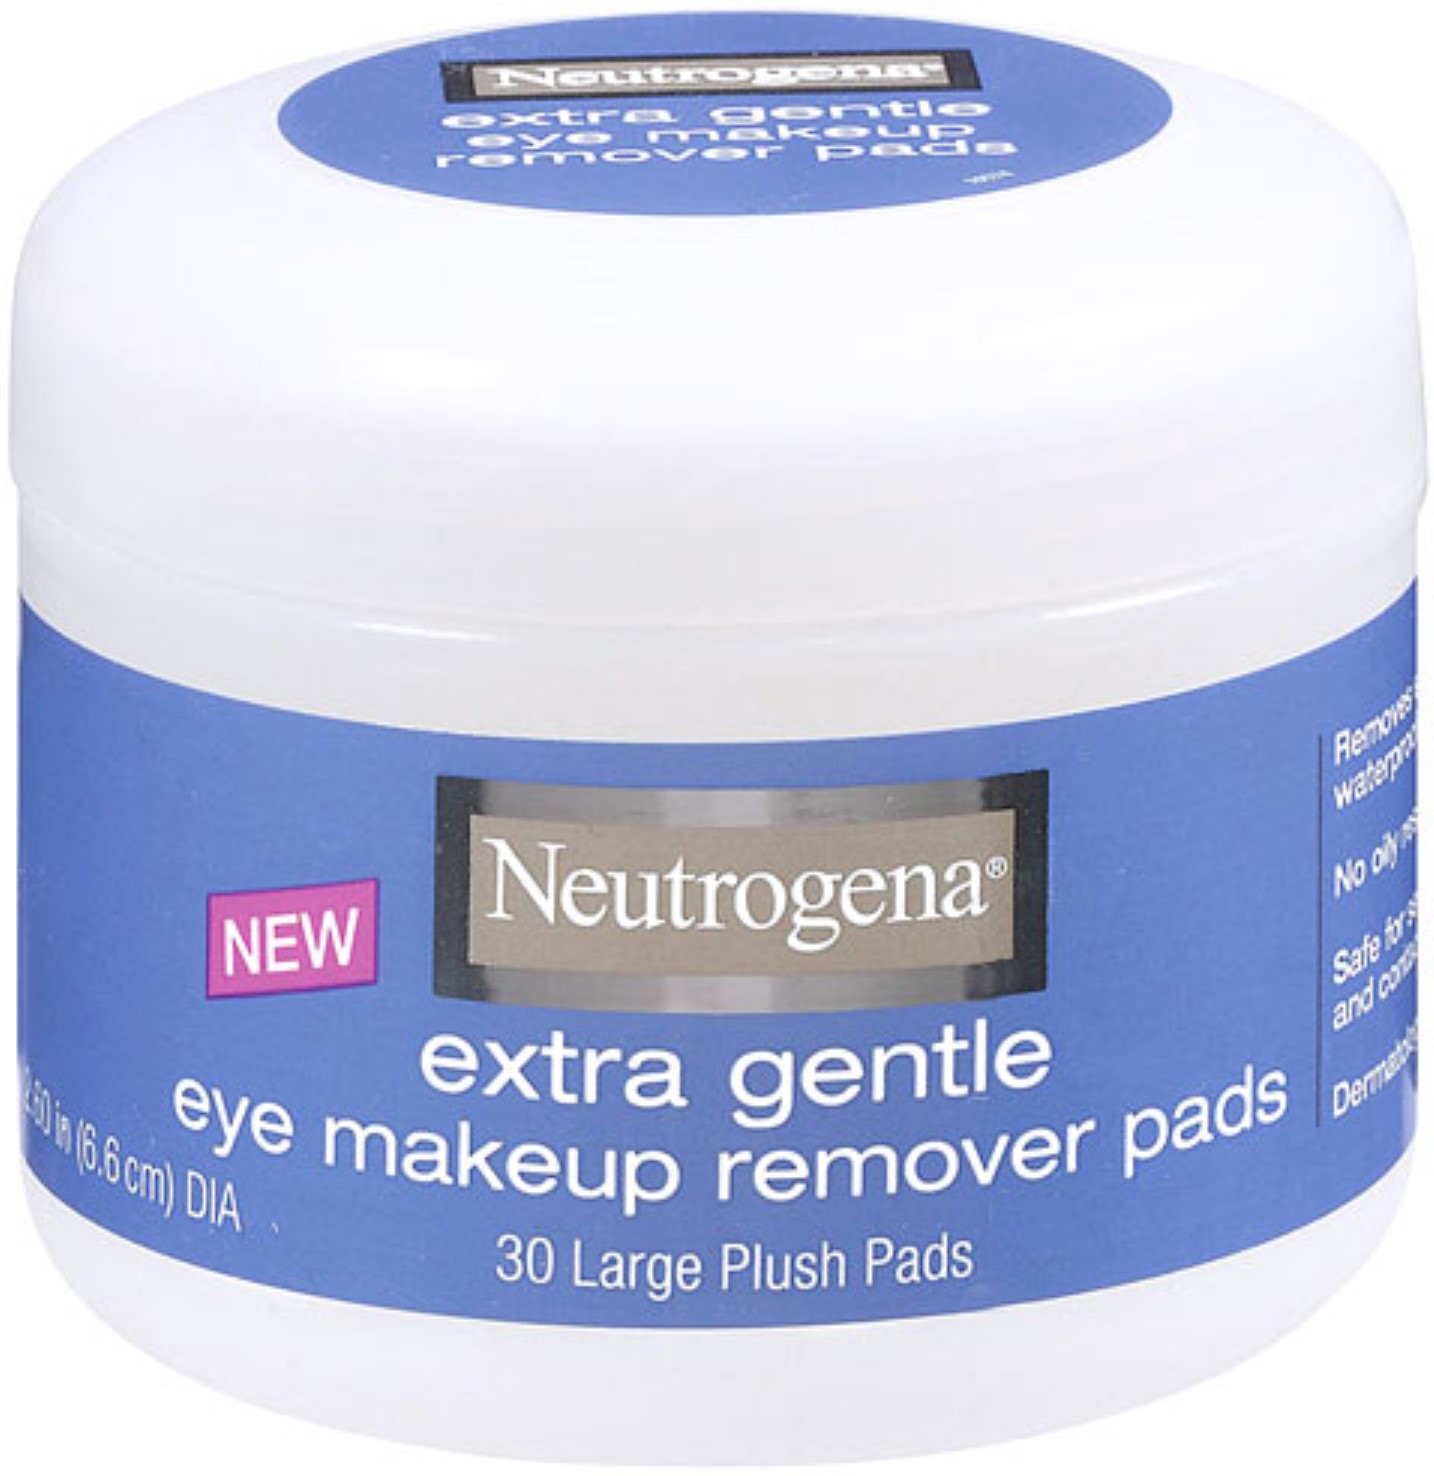 Neutrogena Extra Gentle Eye Makeup Remover Pads 30 ea (Pack of 3)